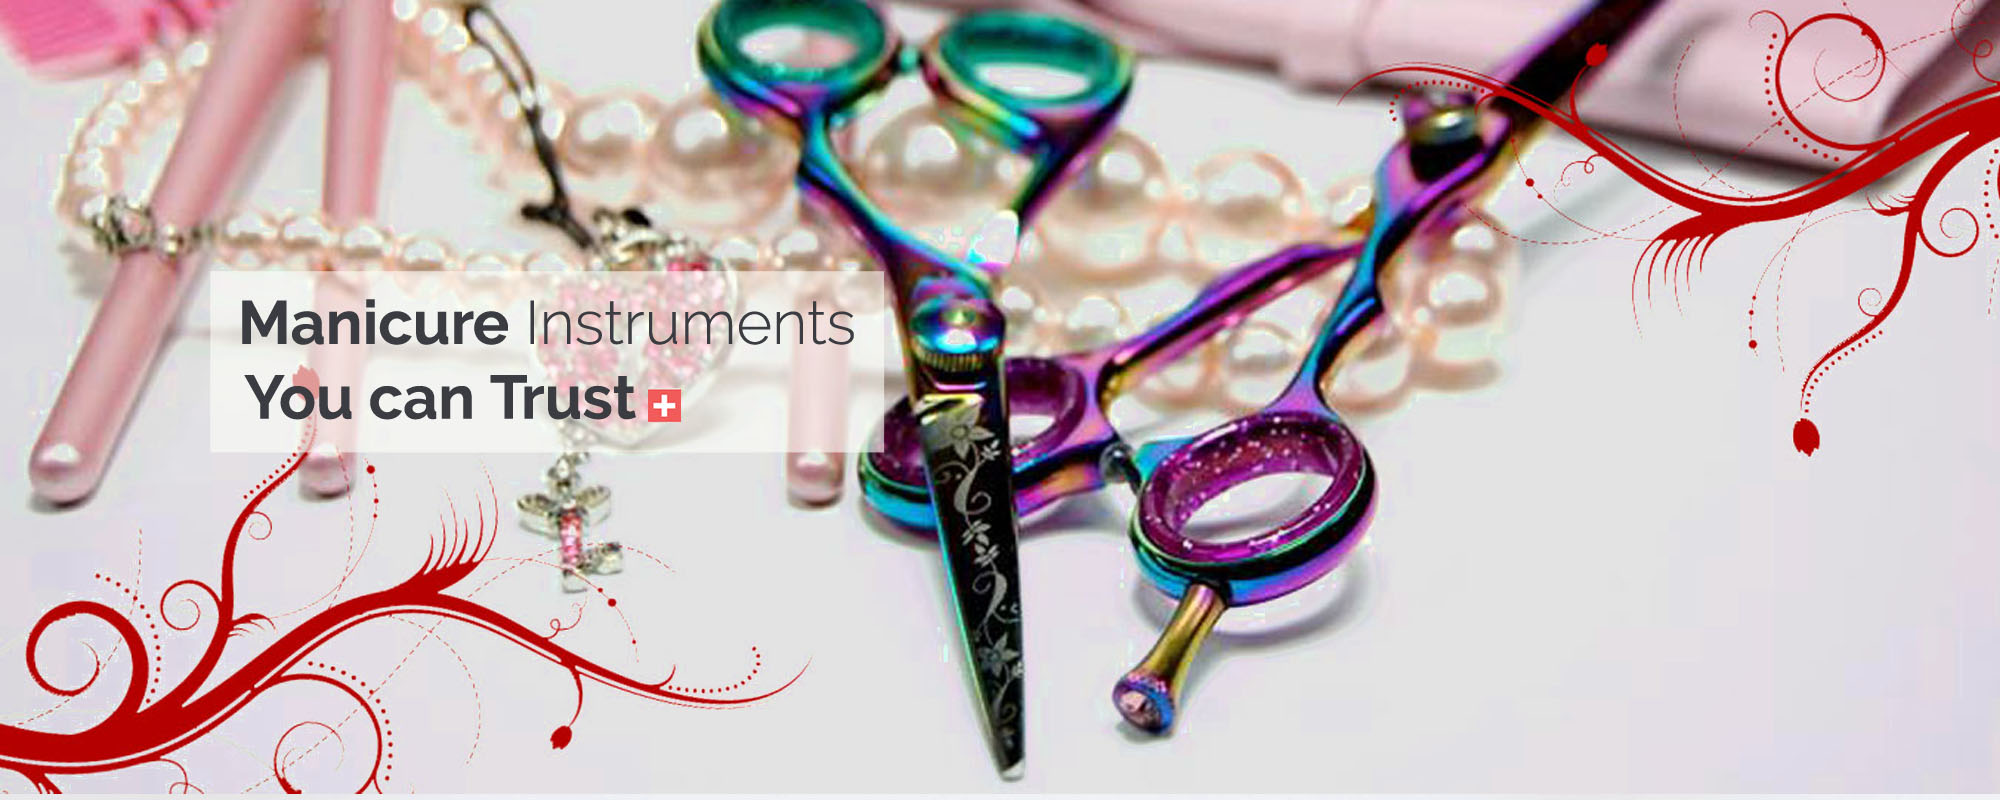 Manicure Instruments